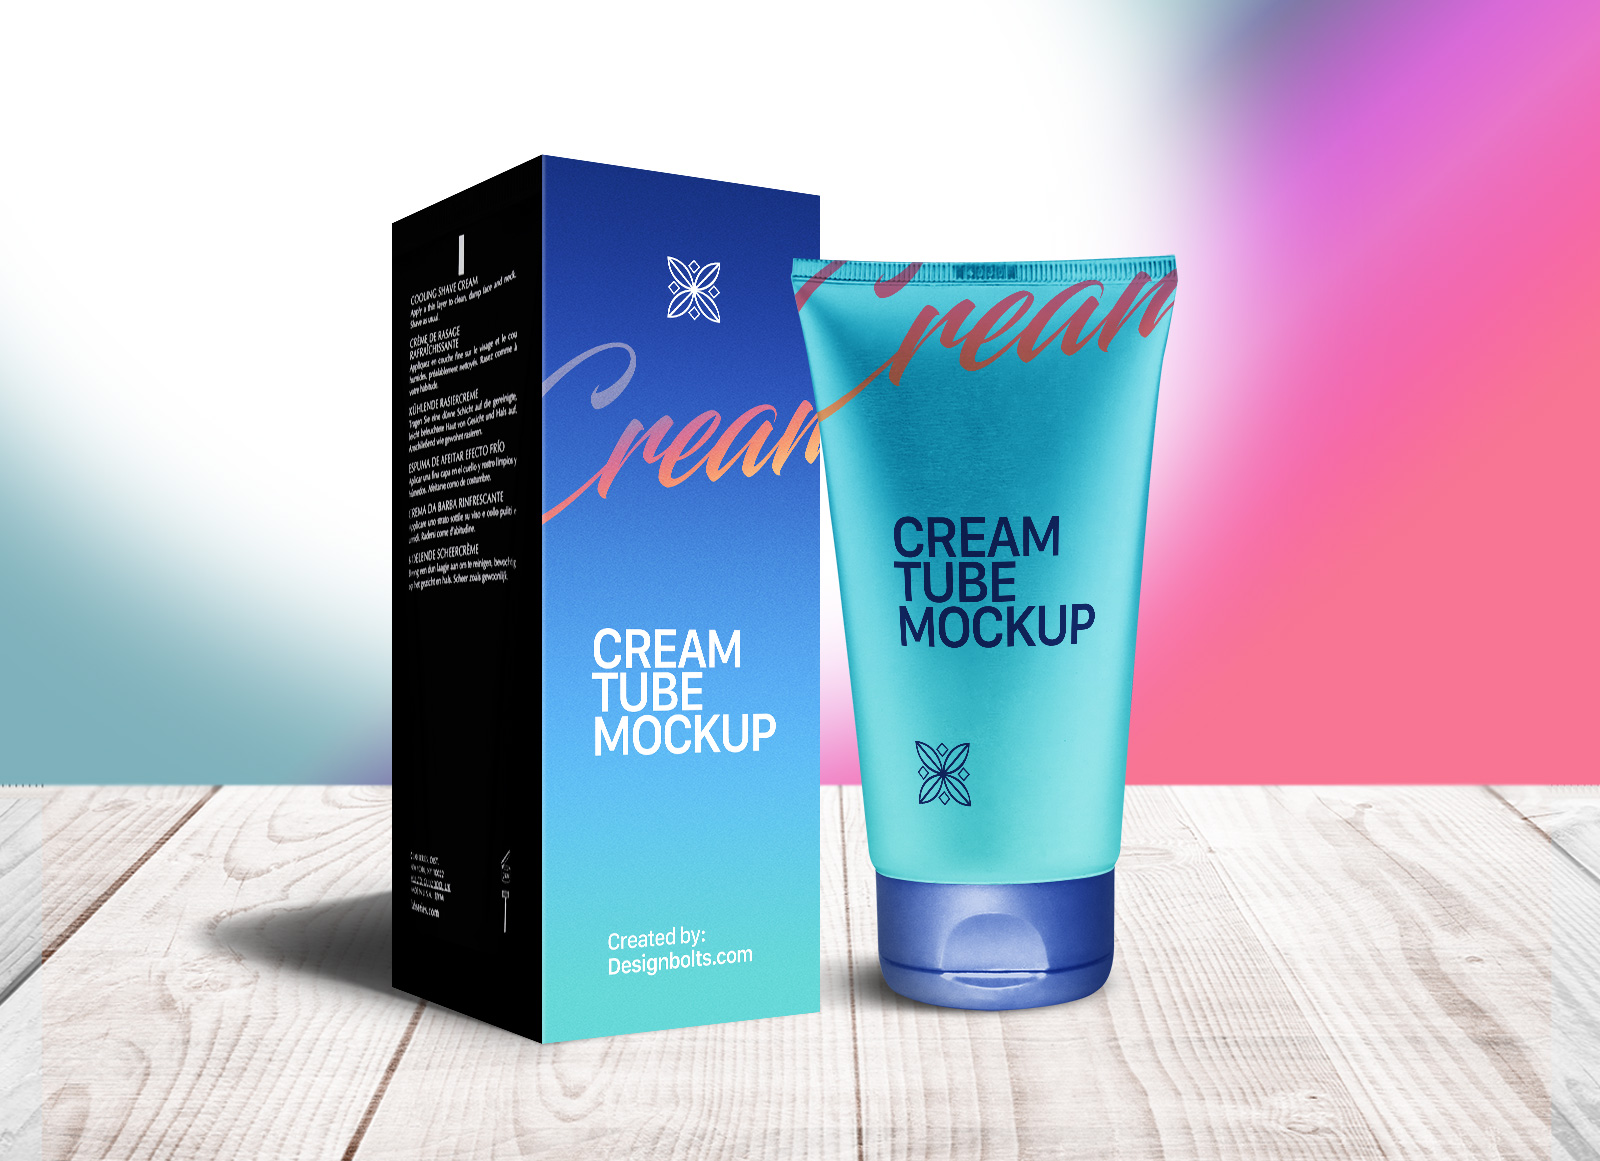 Free-Shaving-Cream-Tube-Mockup-PSD